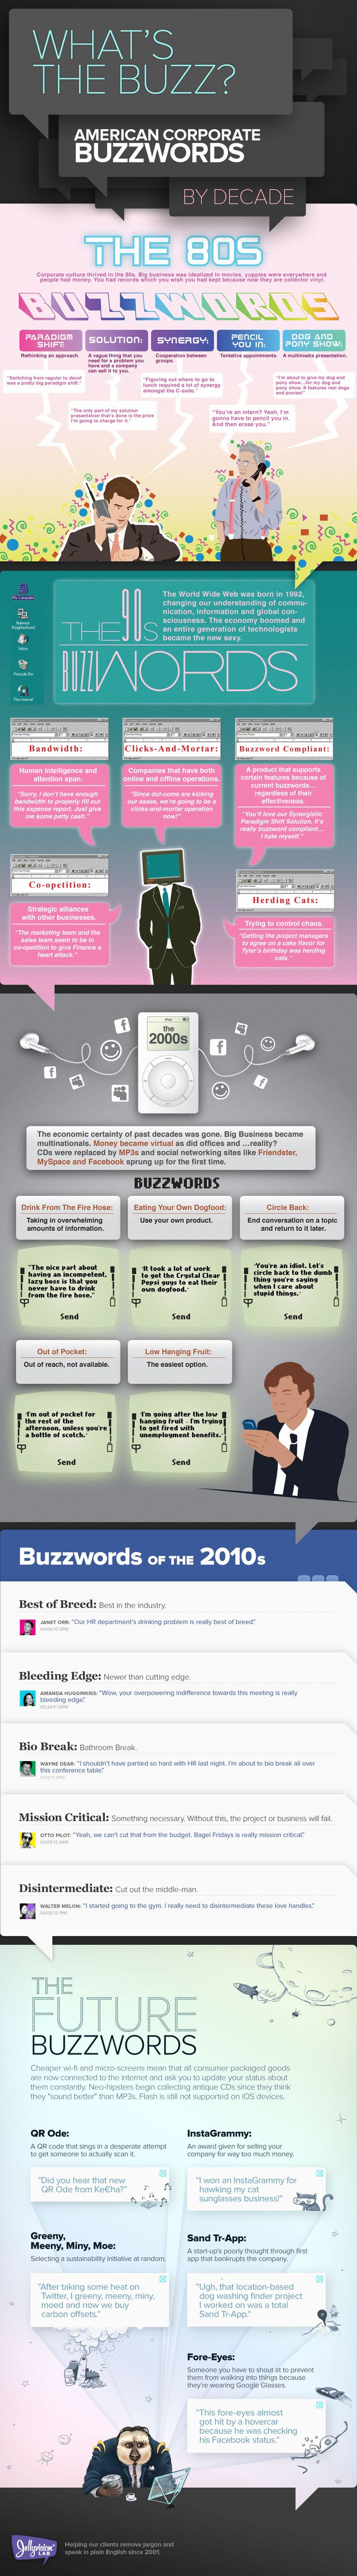 American Corporate Buzzwords By Decades: American Corporate, Fashion, Website, Internet Site, Big Pictures, Corporate Buzzword, Buzzword Infographic, Decade Infographic